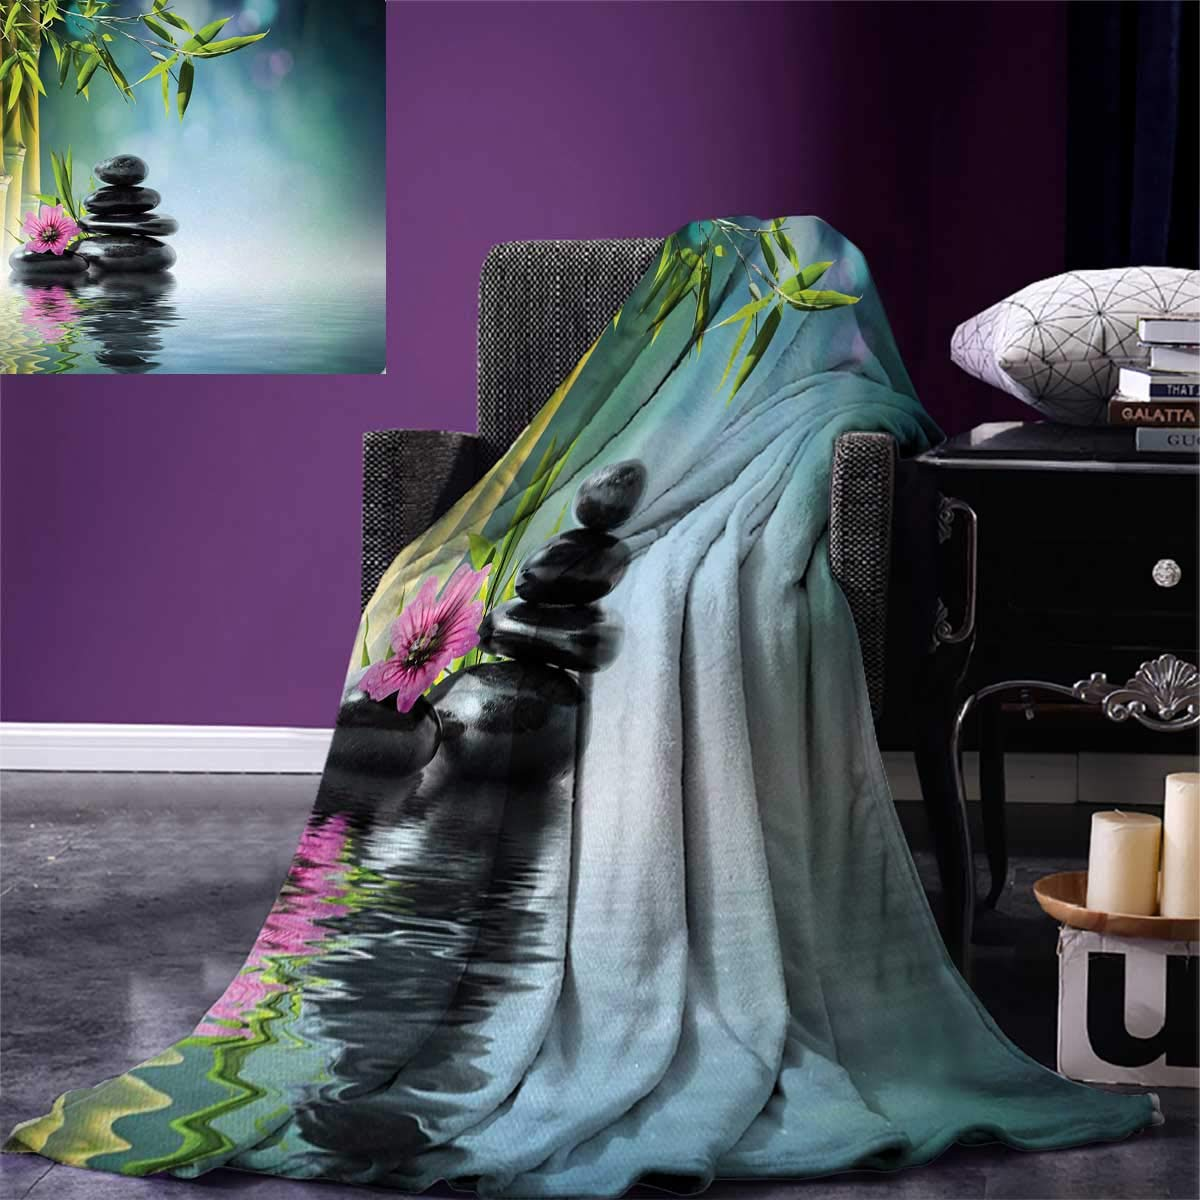 Spa Digital Printing Blanket Tower Stone and Hibiscus with Bamboo on The Water Blurry Background Summer Quilt Comforter 80''x60'' Petrol Blue Fuchsia Lime Green